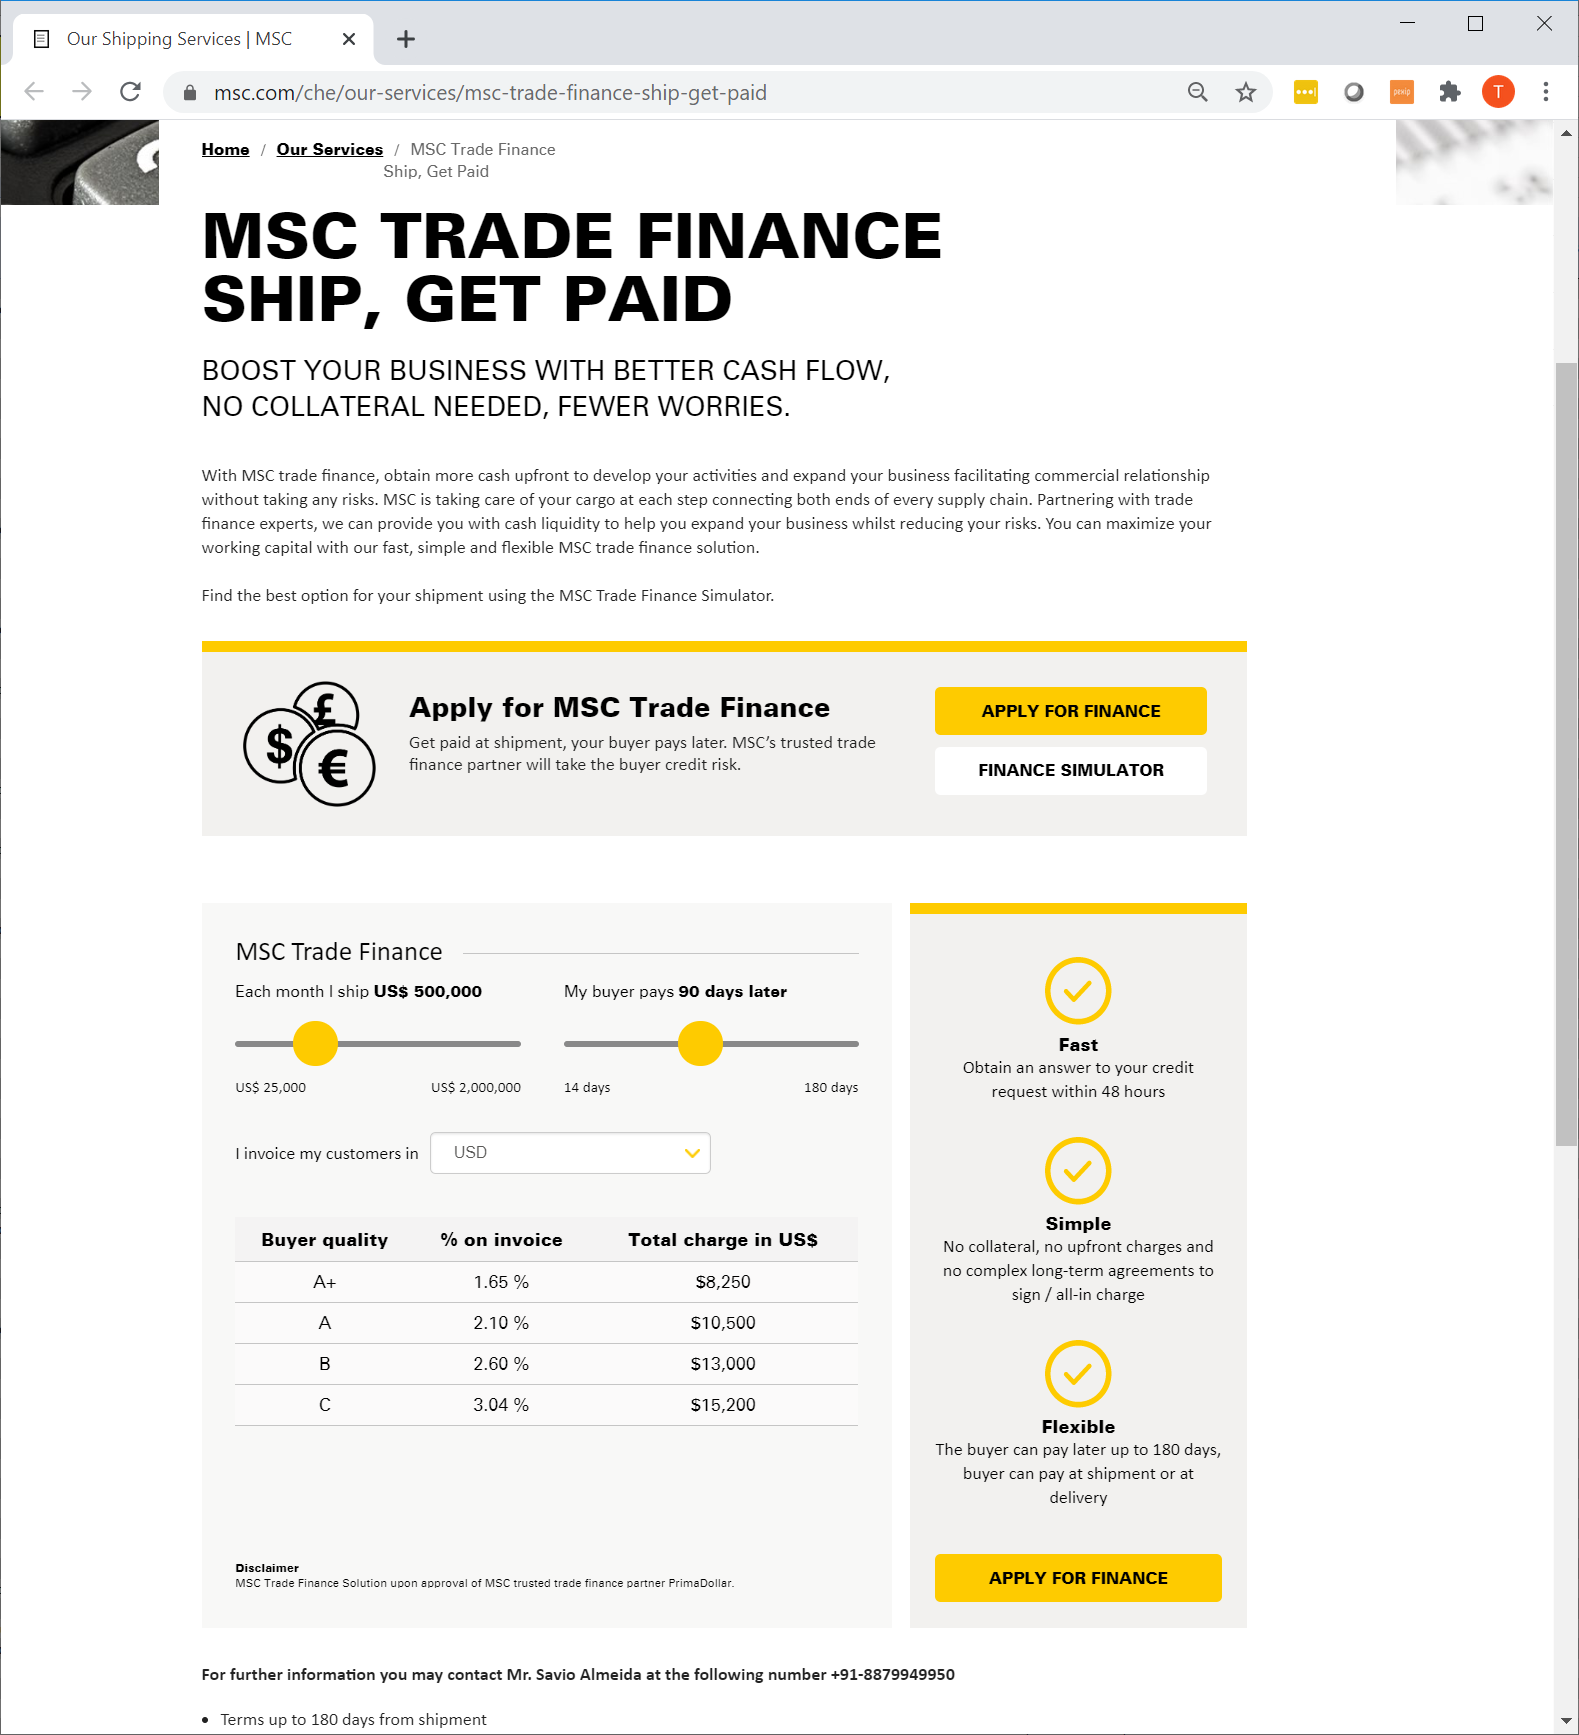 MSC launches MSC Trade Finance